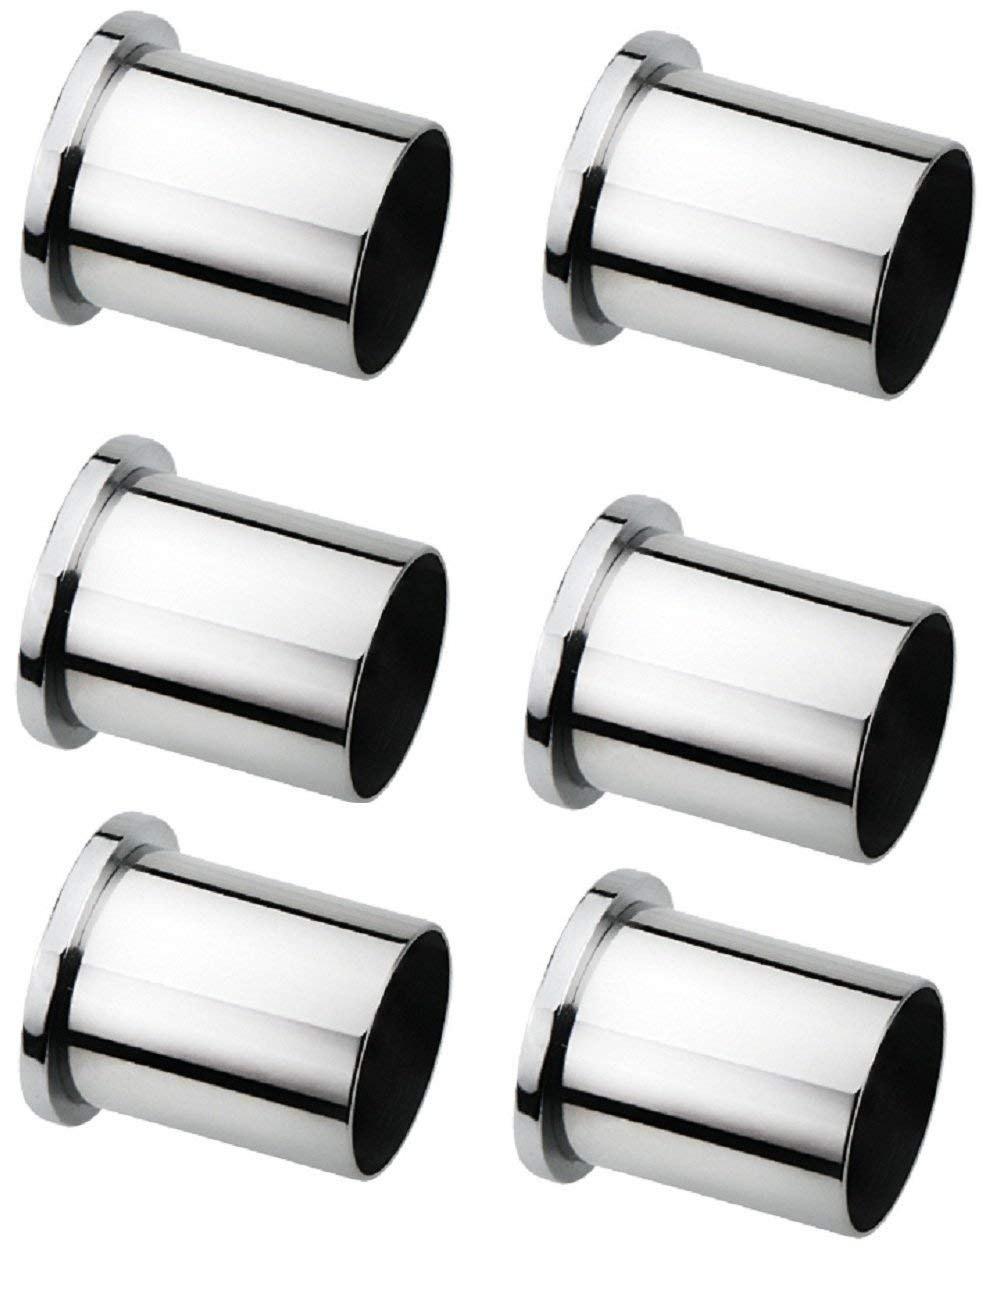 ss long wall to wall bracket for curtain rod fitting 1 inch with screws 6 pcs oginie home beyond